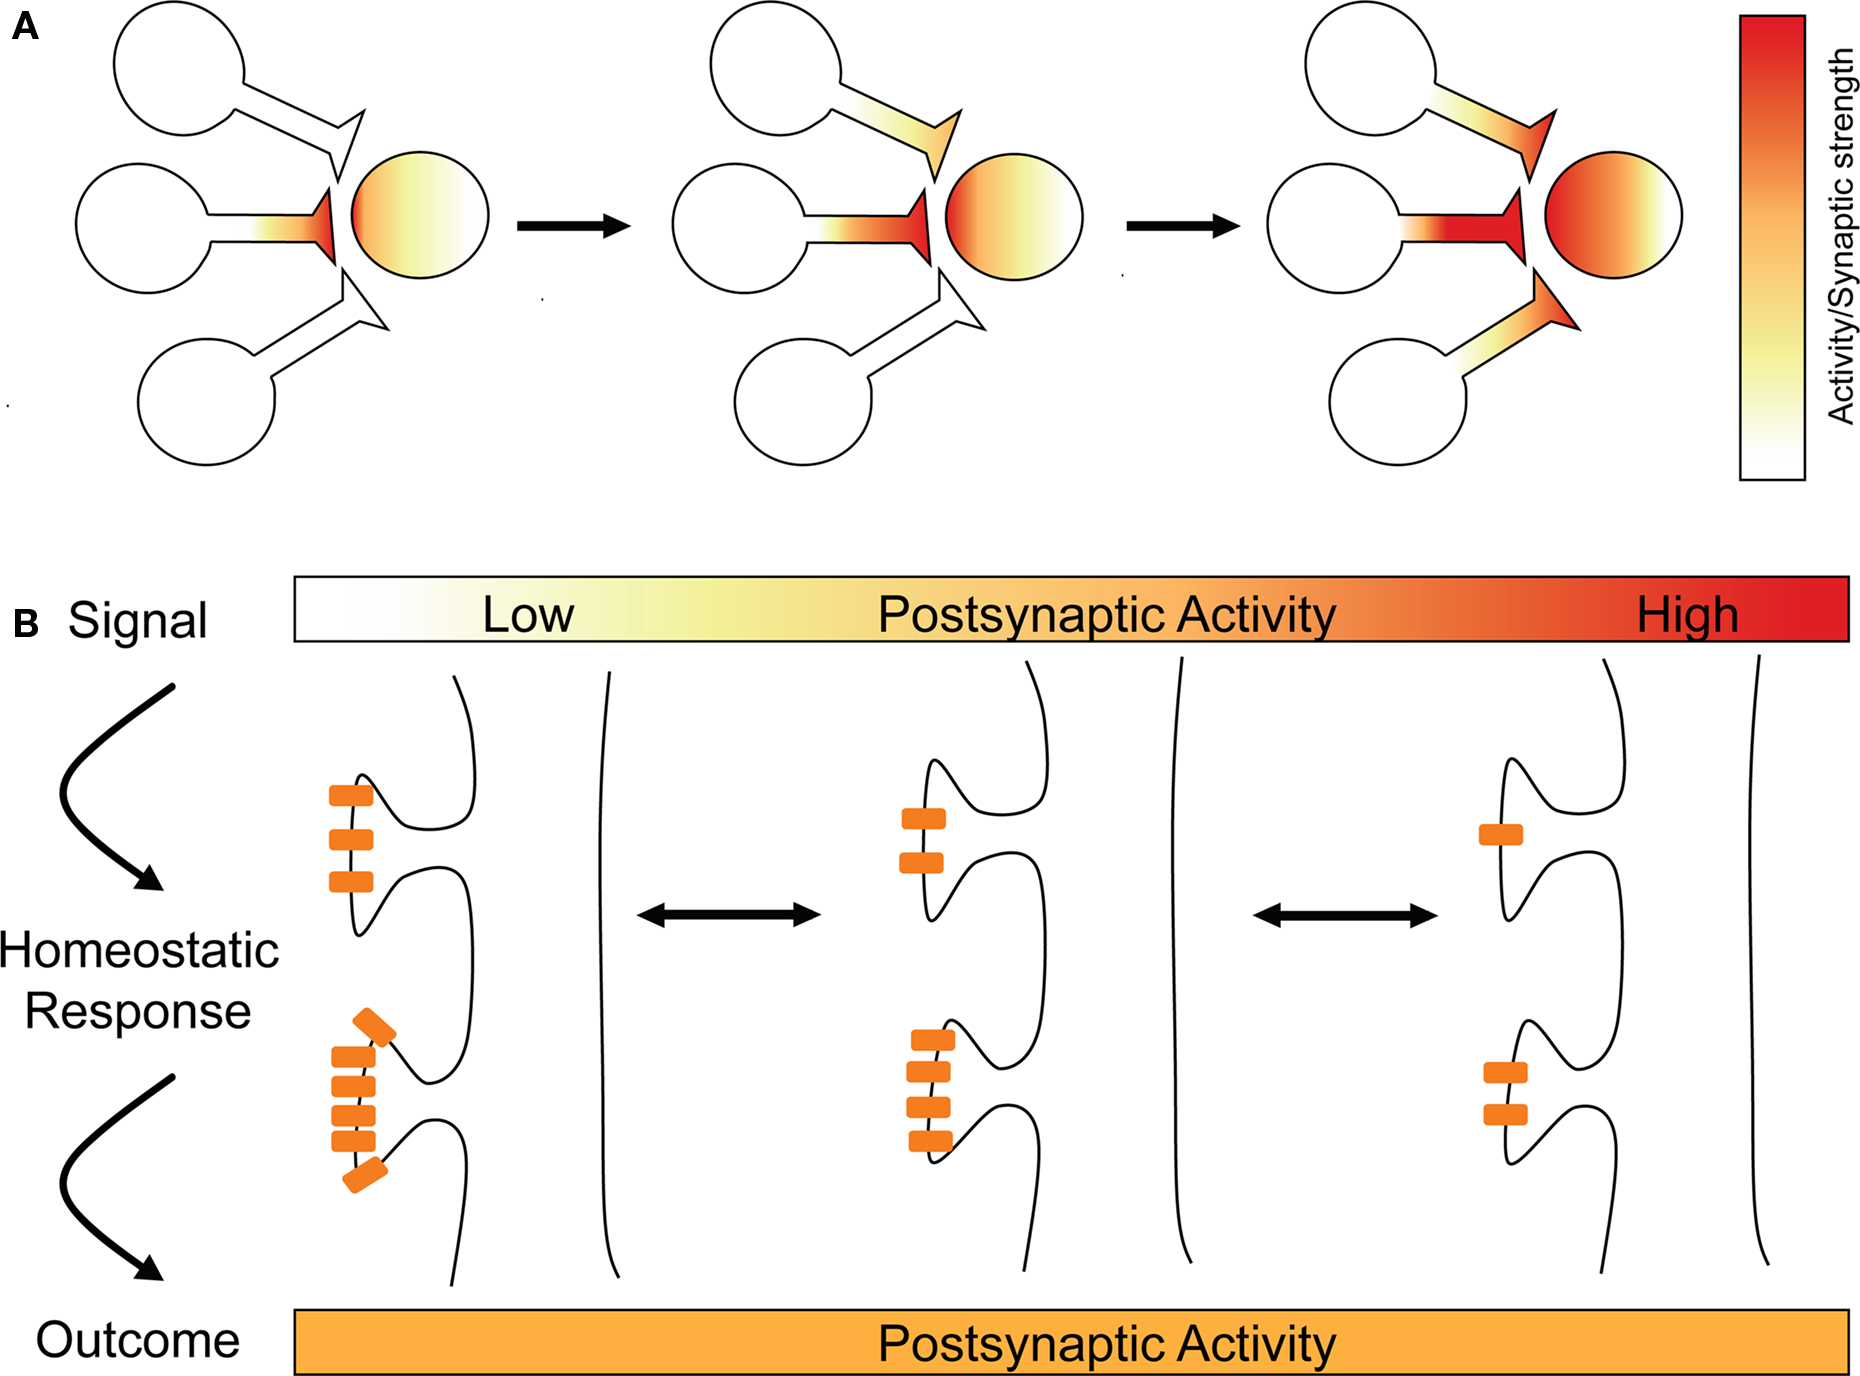 homesotatic plasticity Recent studies have shown that ocular dominance plasticity in layer 2/3 of the visual cortex exhibits a form of homeostatic plasticity that is related to synaptic scaling and depends on.